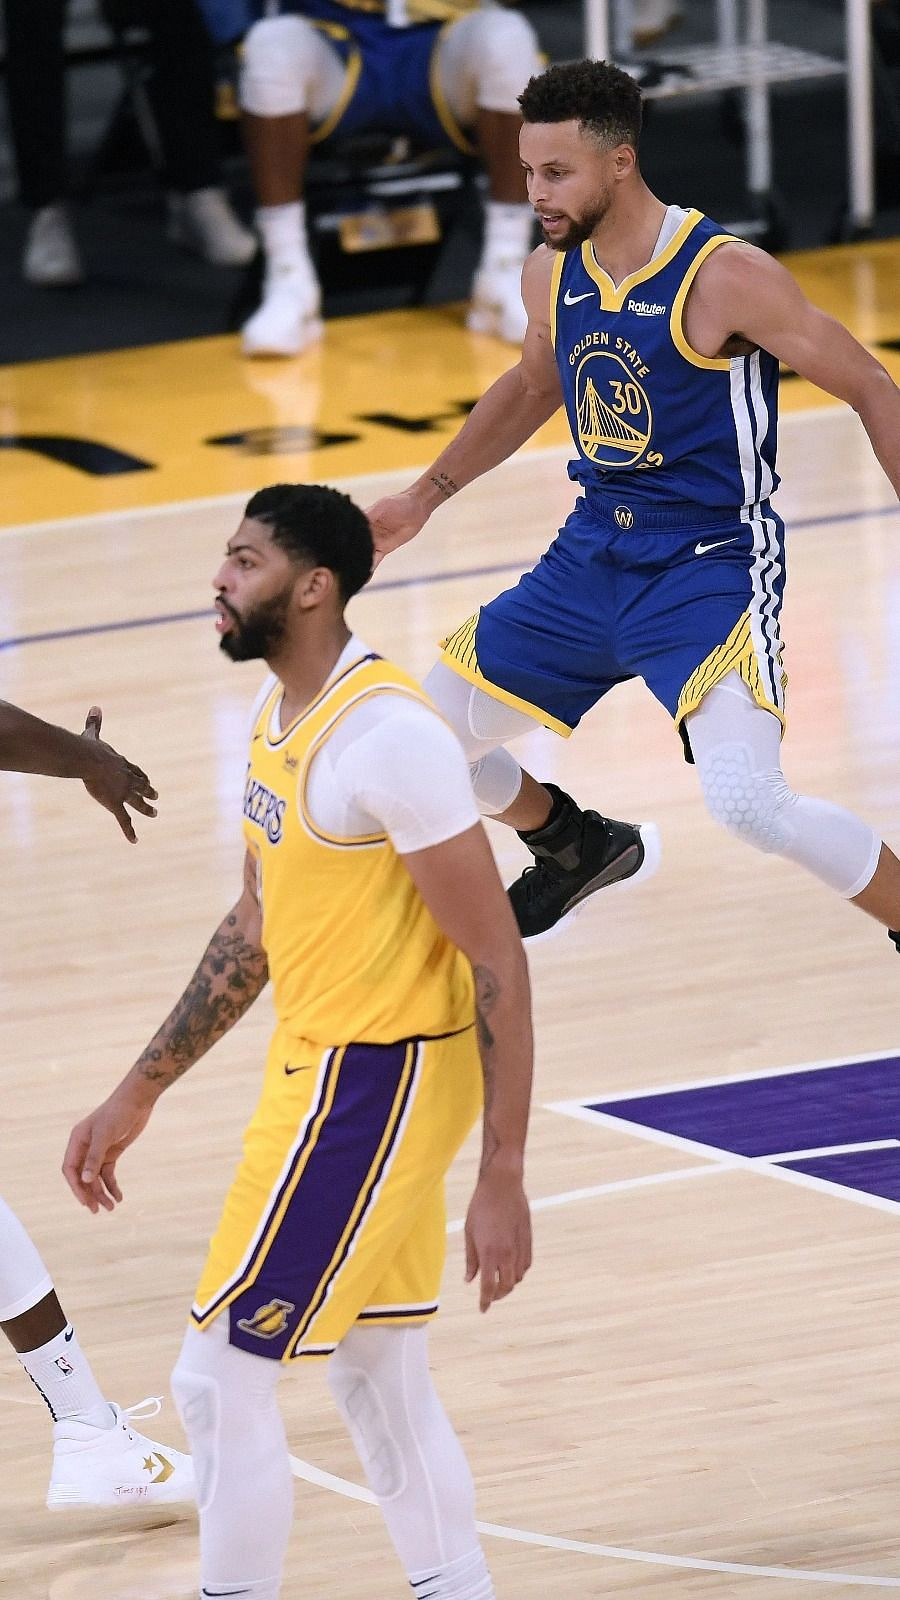 Golden State Warriors Vs La Lakers 3 Key Matchups That Could Determine The Outcome Of The Blockbuster Encounter February 28th 2021 Nba Season 2020 21